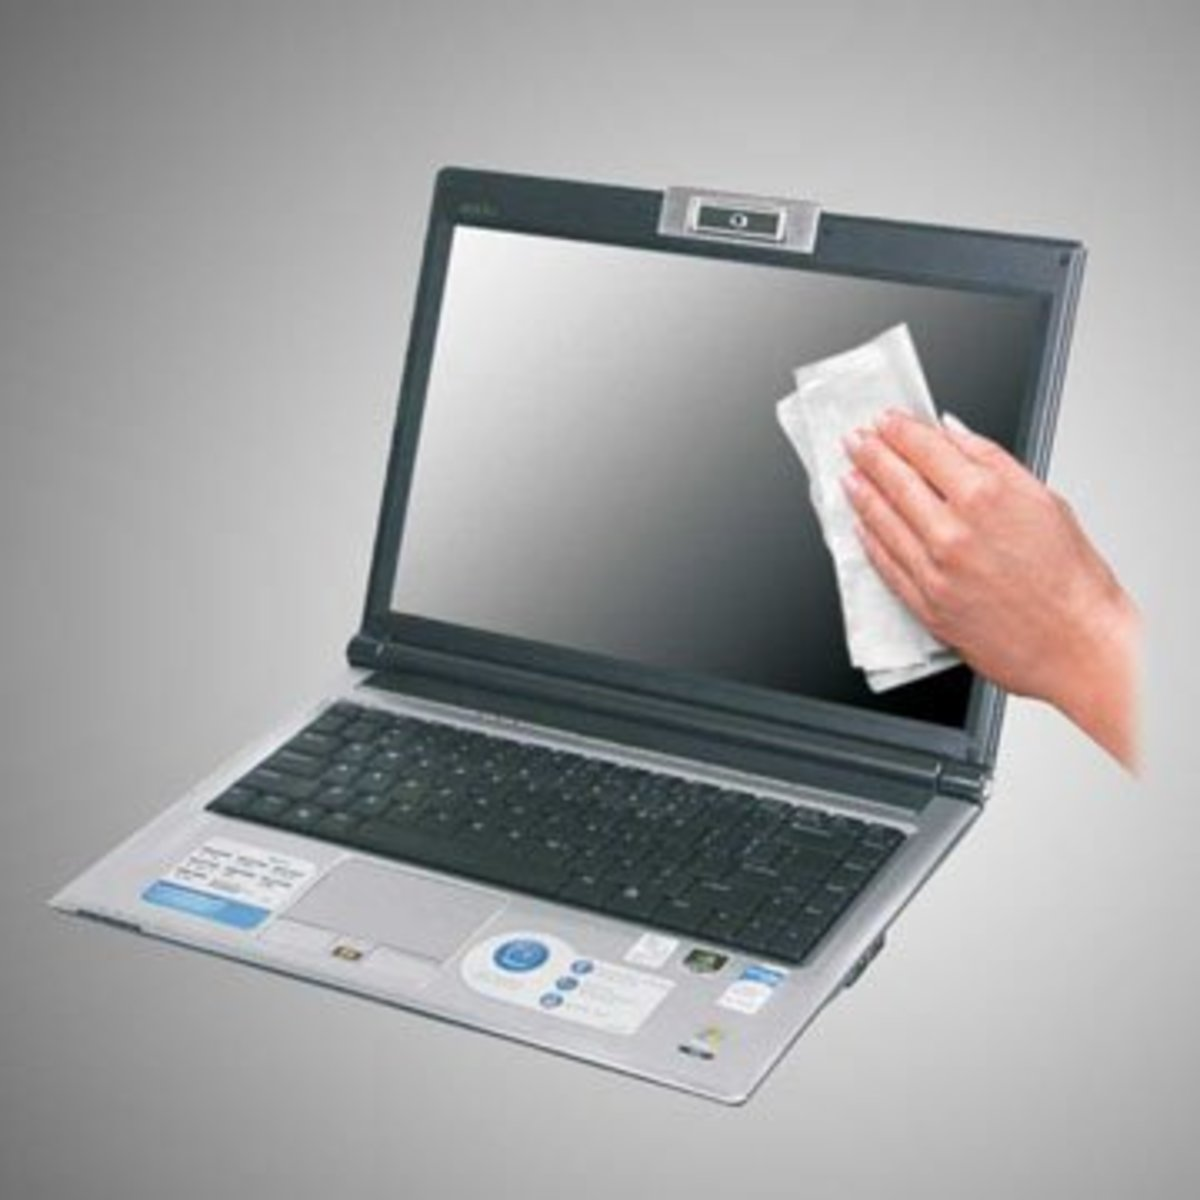 Clean your device with a clean,dry and soft white cloth